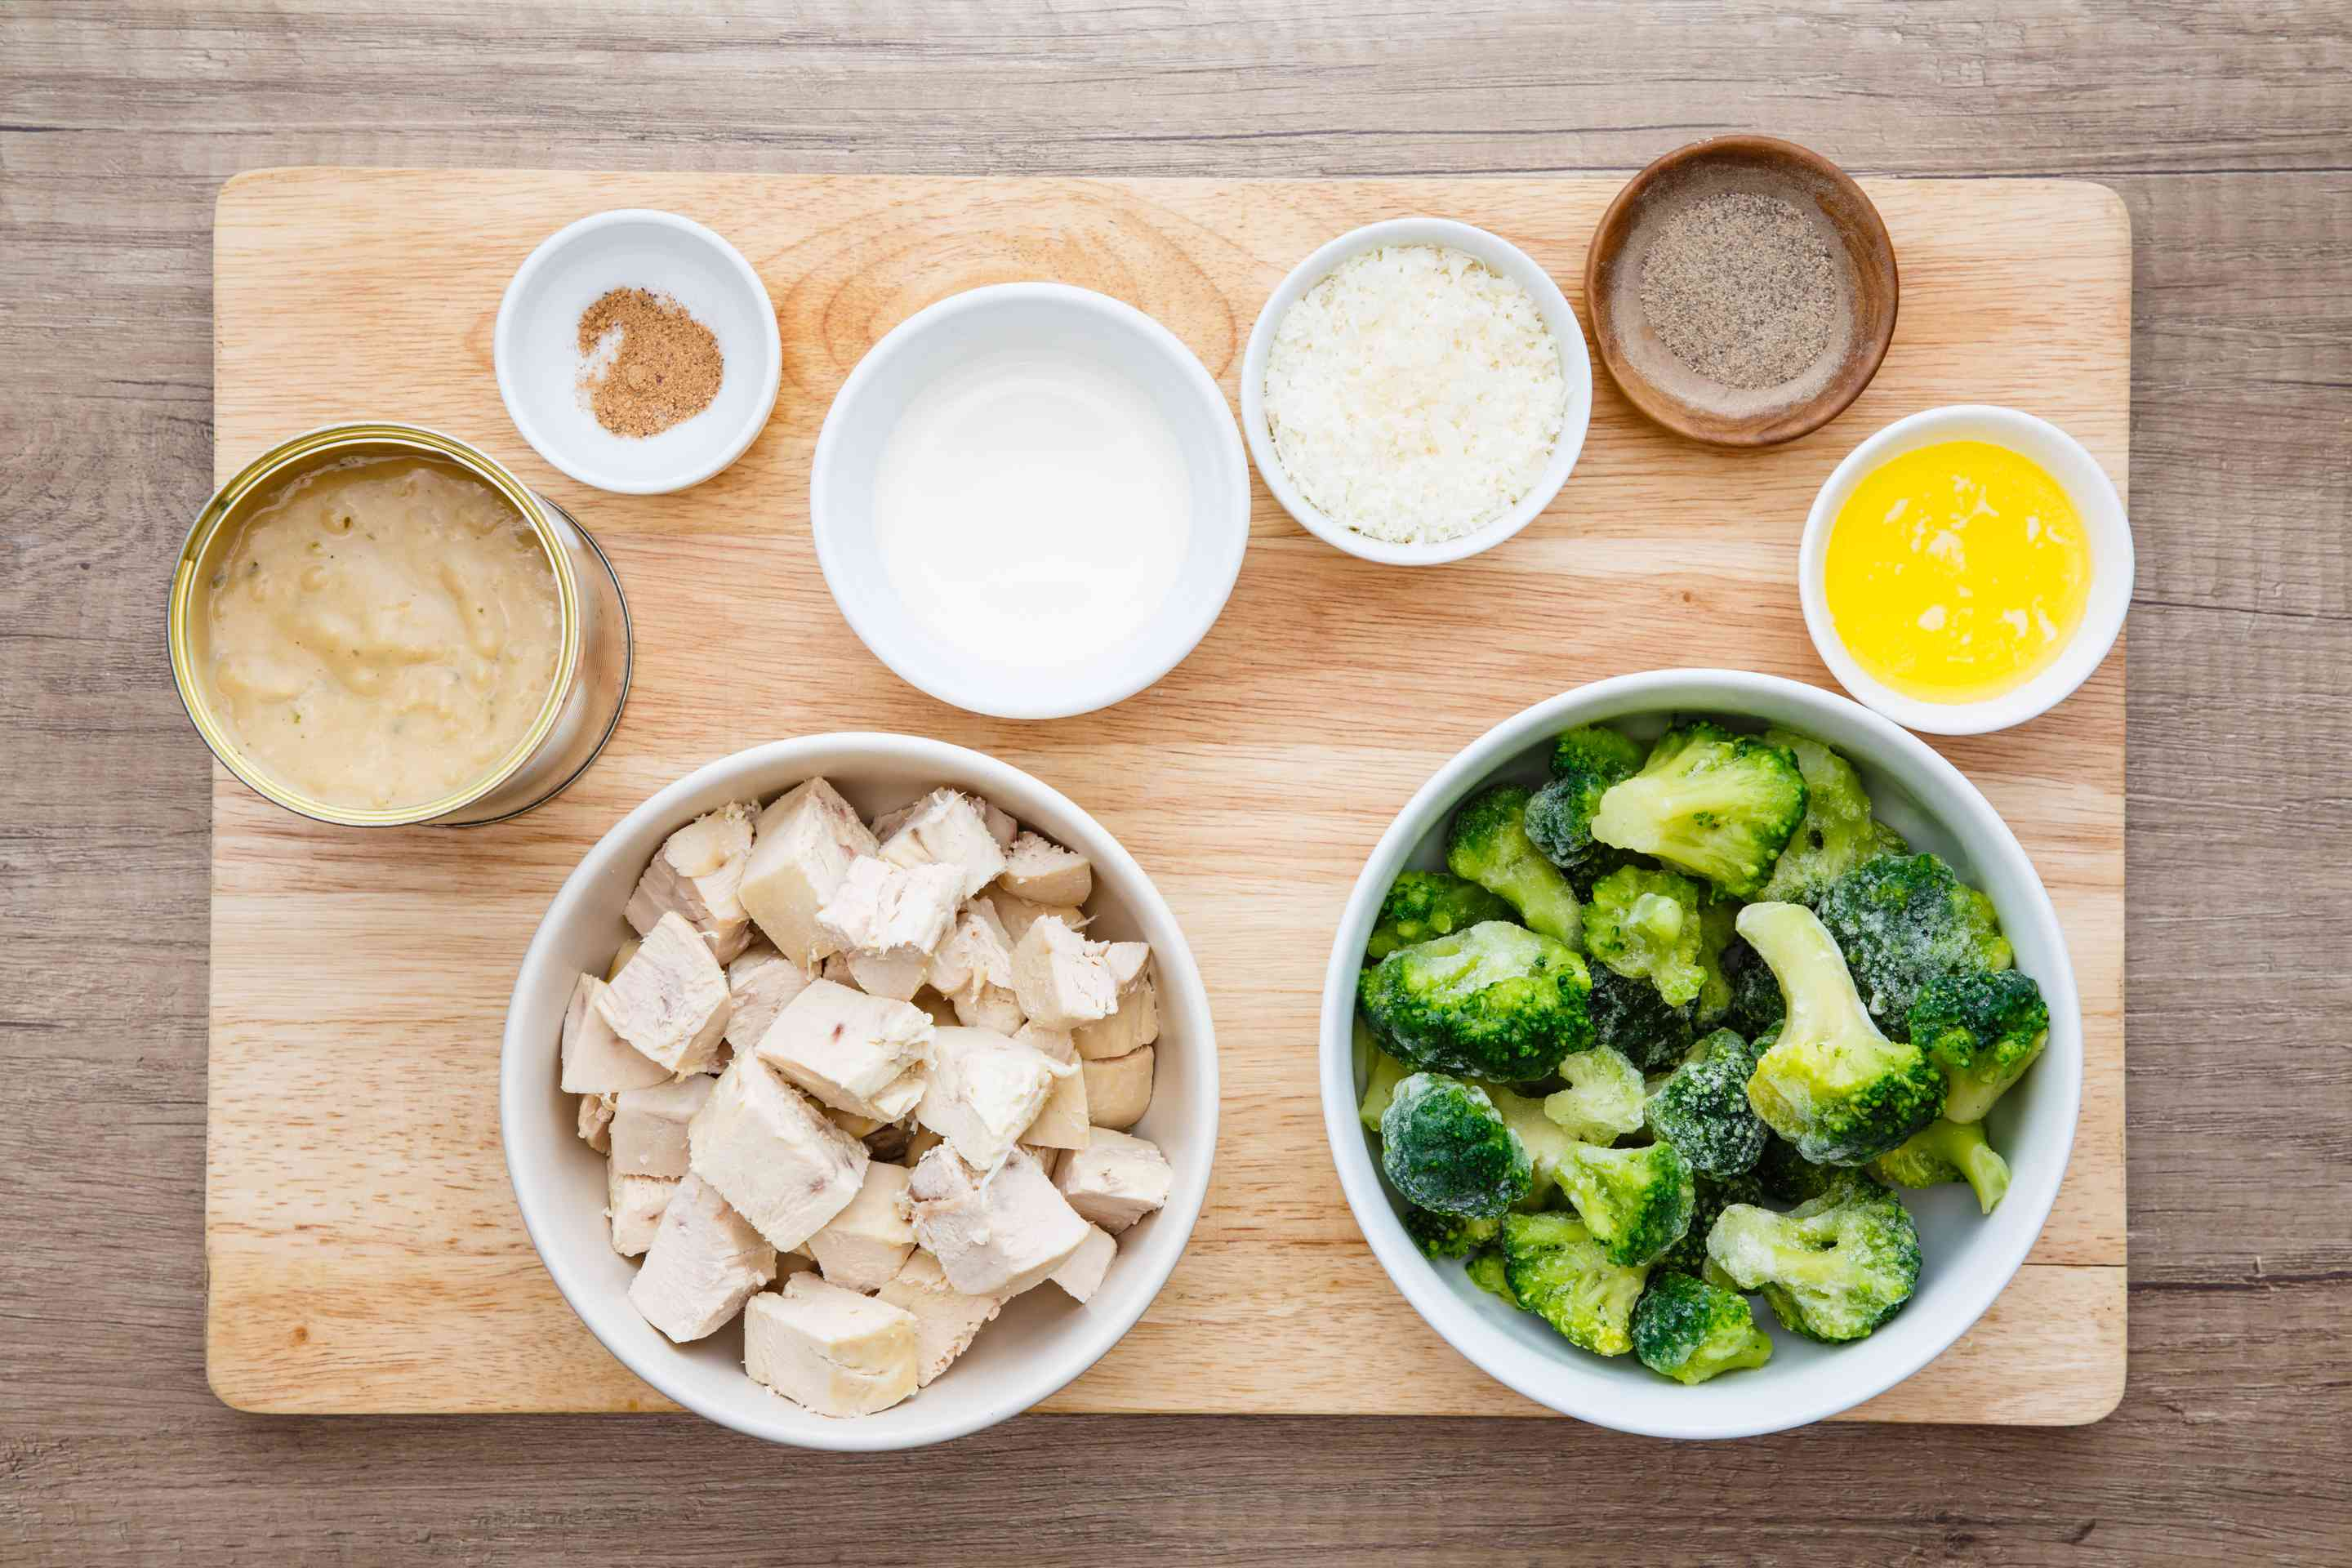 Ingredients for chicken and broccoli casserole